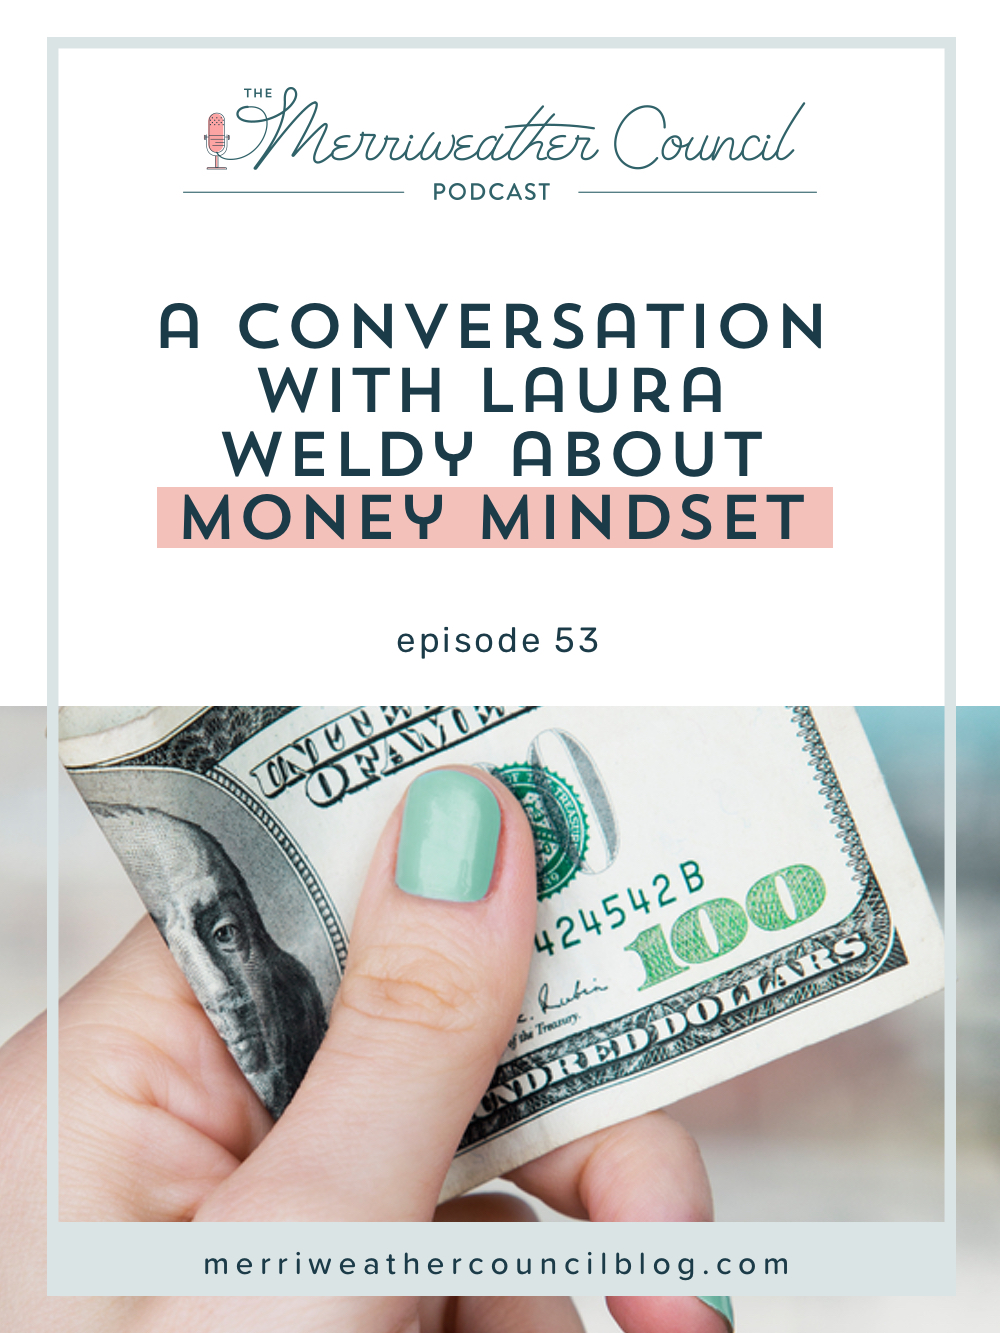 In this episode of the Merriweather Council Podcast Laura & I explore the social factors that play into our money mindset and our approach not only to earning money but people who we think do or do not have money. We also spoke about how gender plays a part - or doesn't. | The Merriweather Council Blog